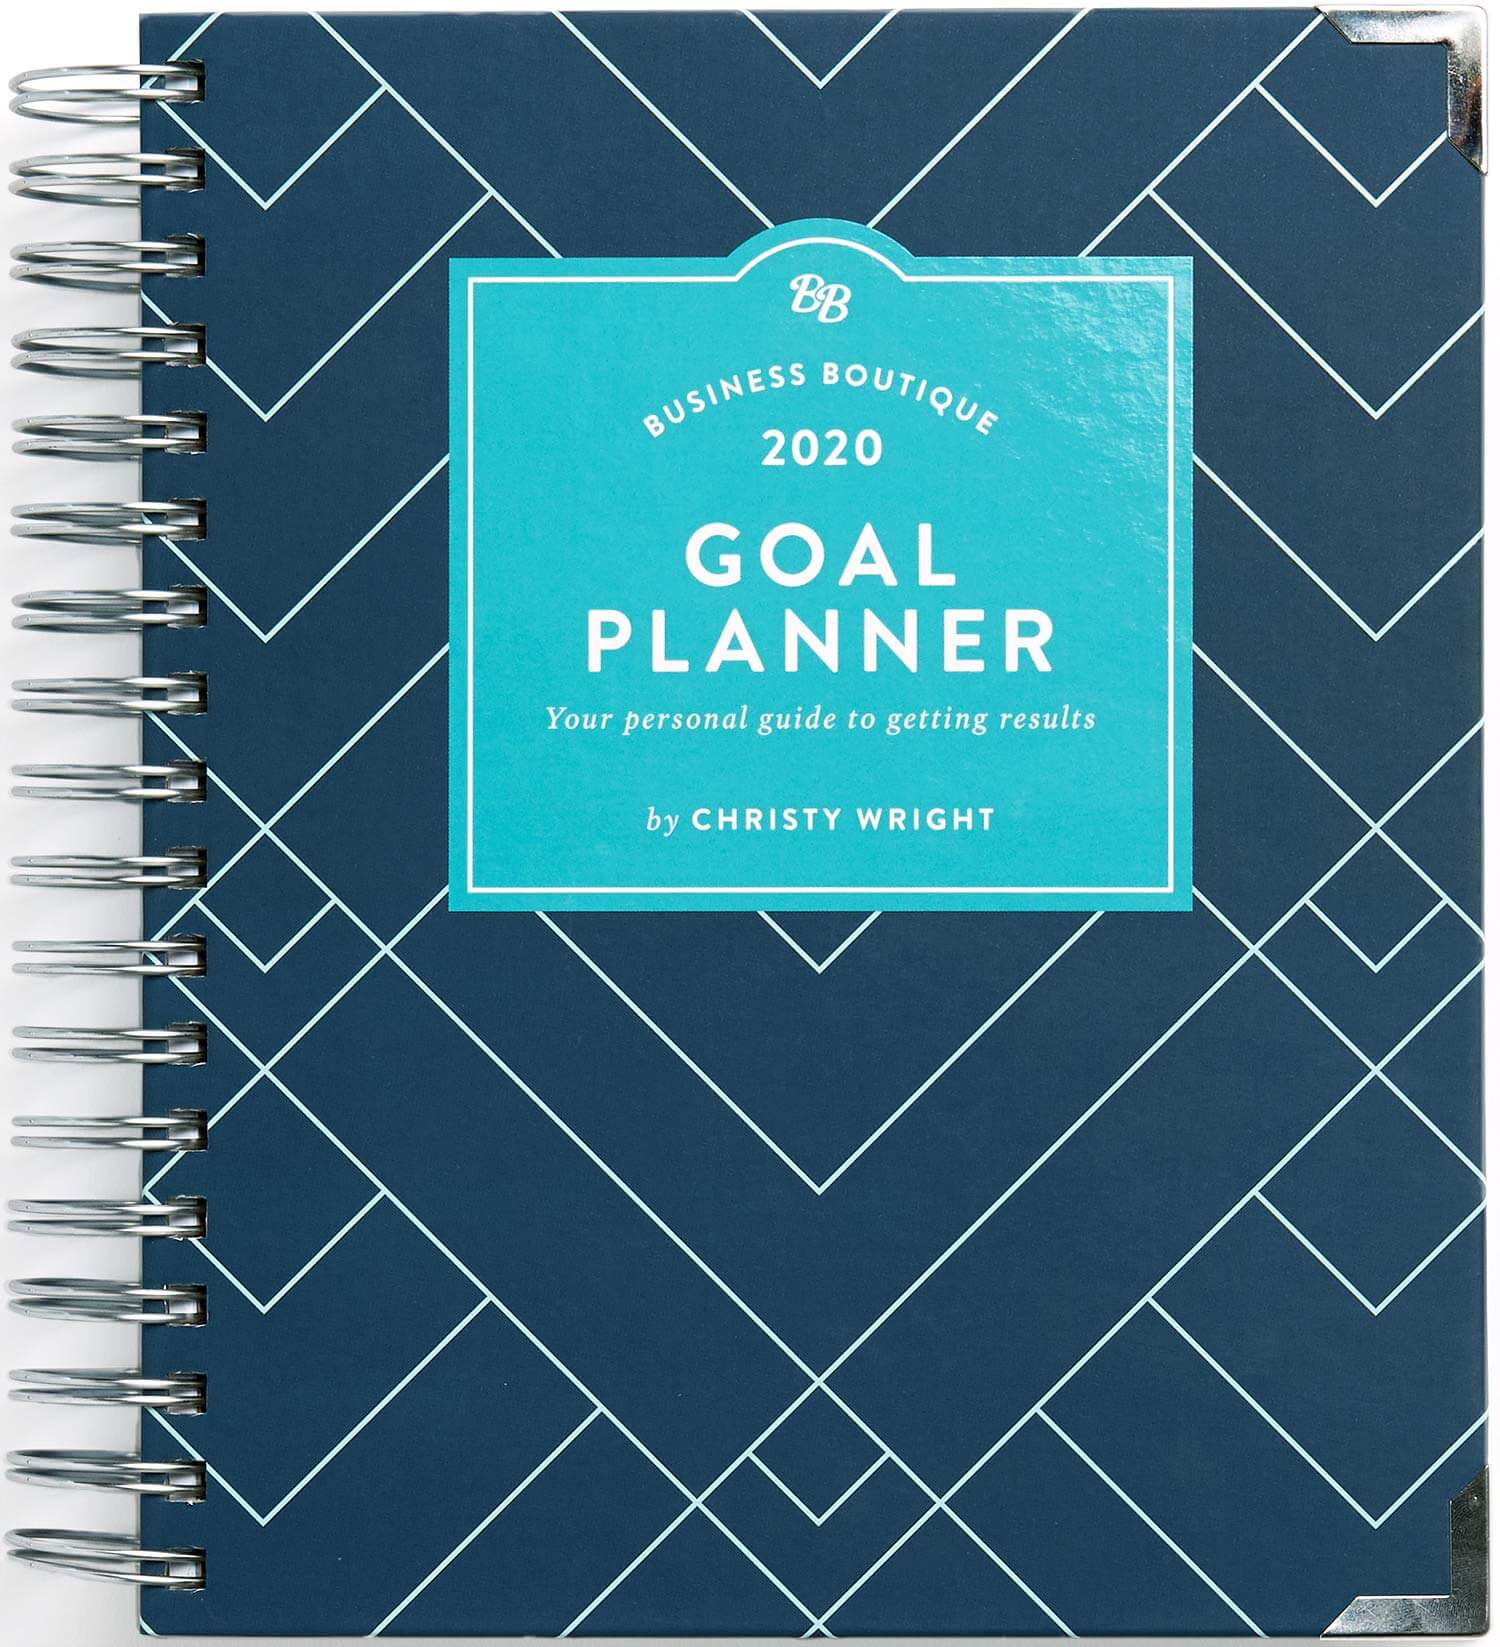 Business-Boutique-Goal-Planner-Christy-Wright